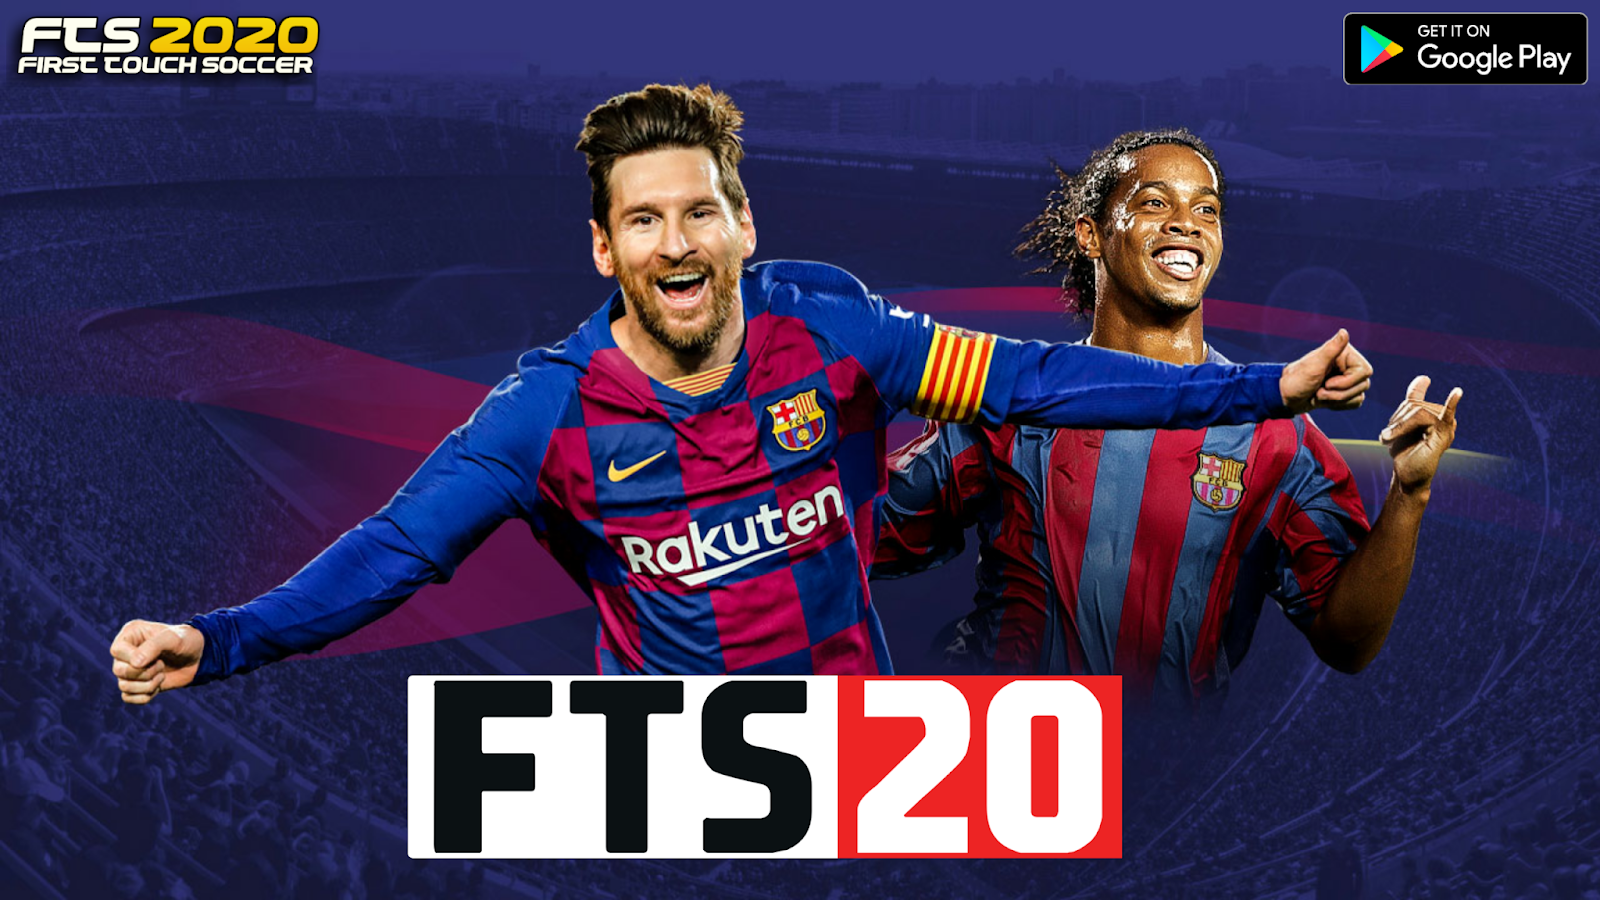 Best Soccer Players 2020.Downlaod Fts 2020 Efootball Pes Edition Best Soccer Game